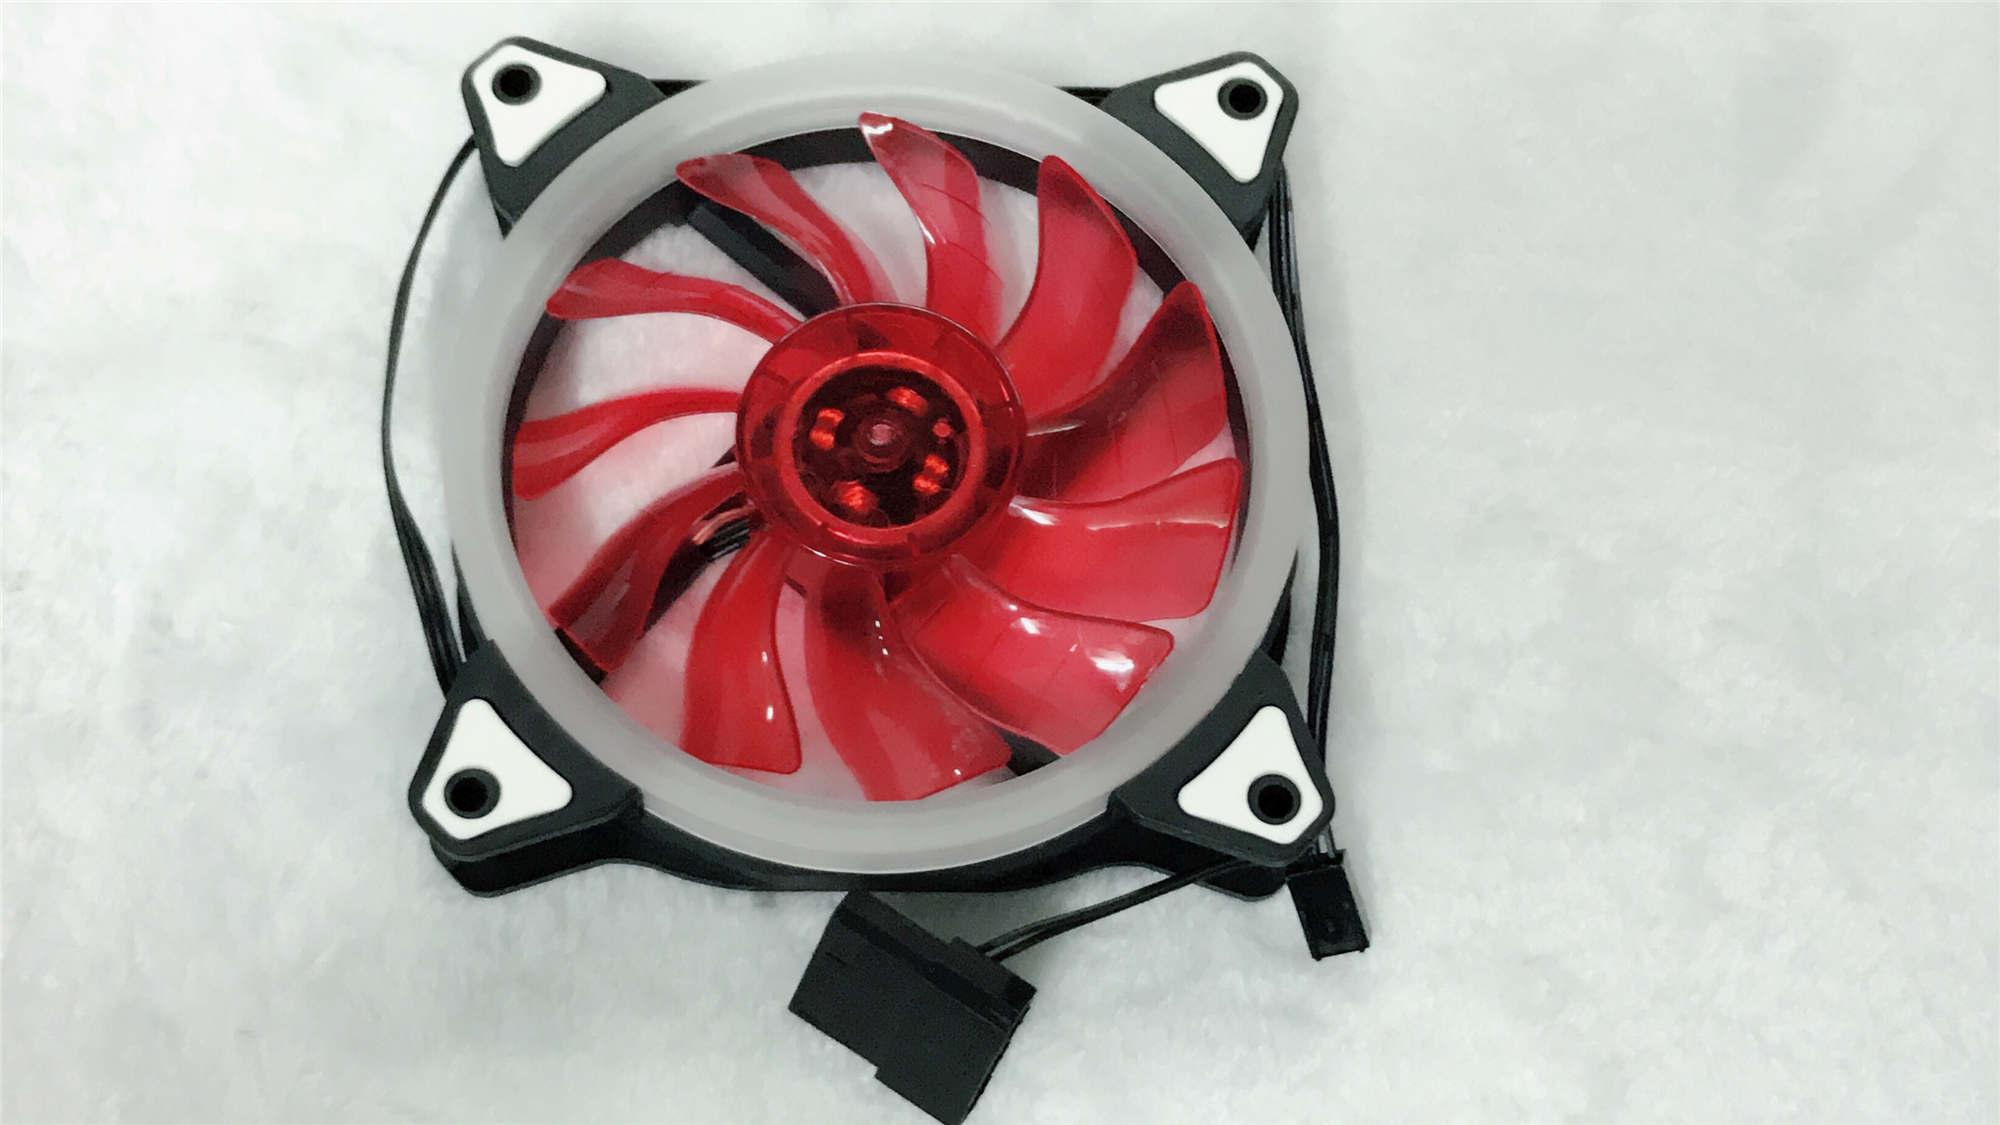 Computer Fans For Sale Heatsinks Prices Brands Specs Deepcool Xfan 12cm Casing Fan Black Kingbao 12v 3 4pin Case Cpu Cooling Ring Led 120mm